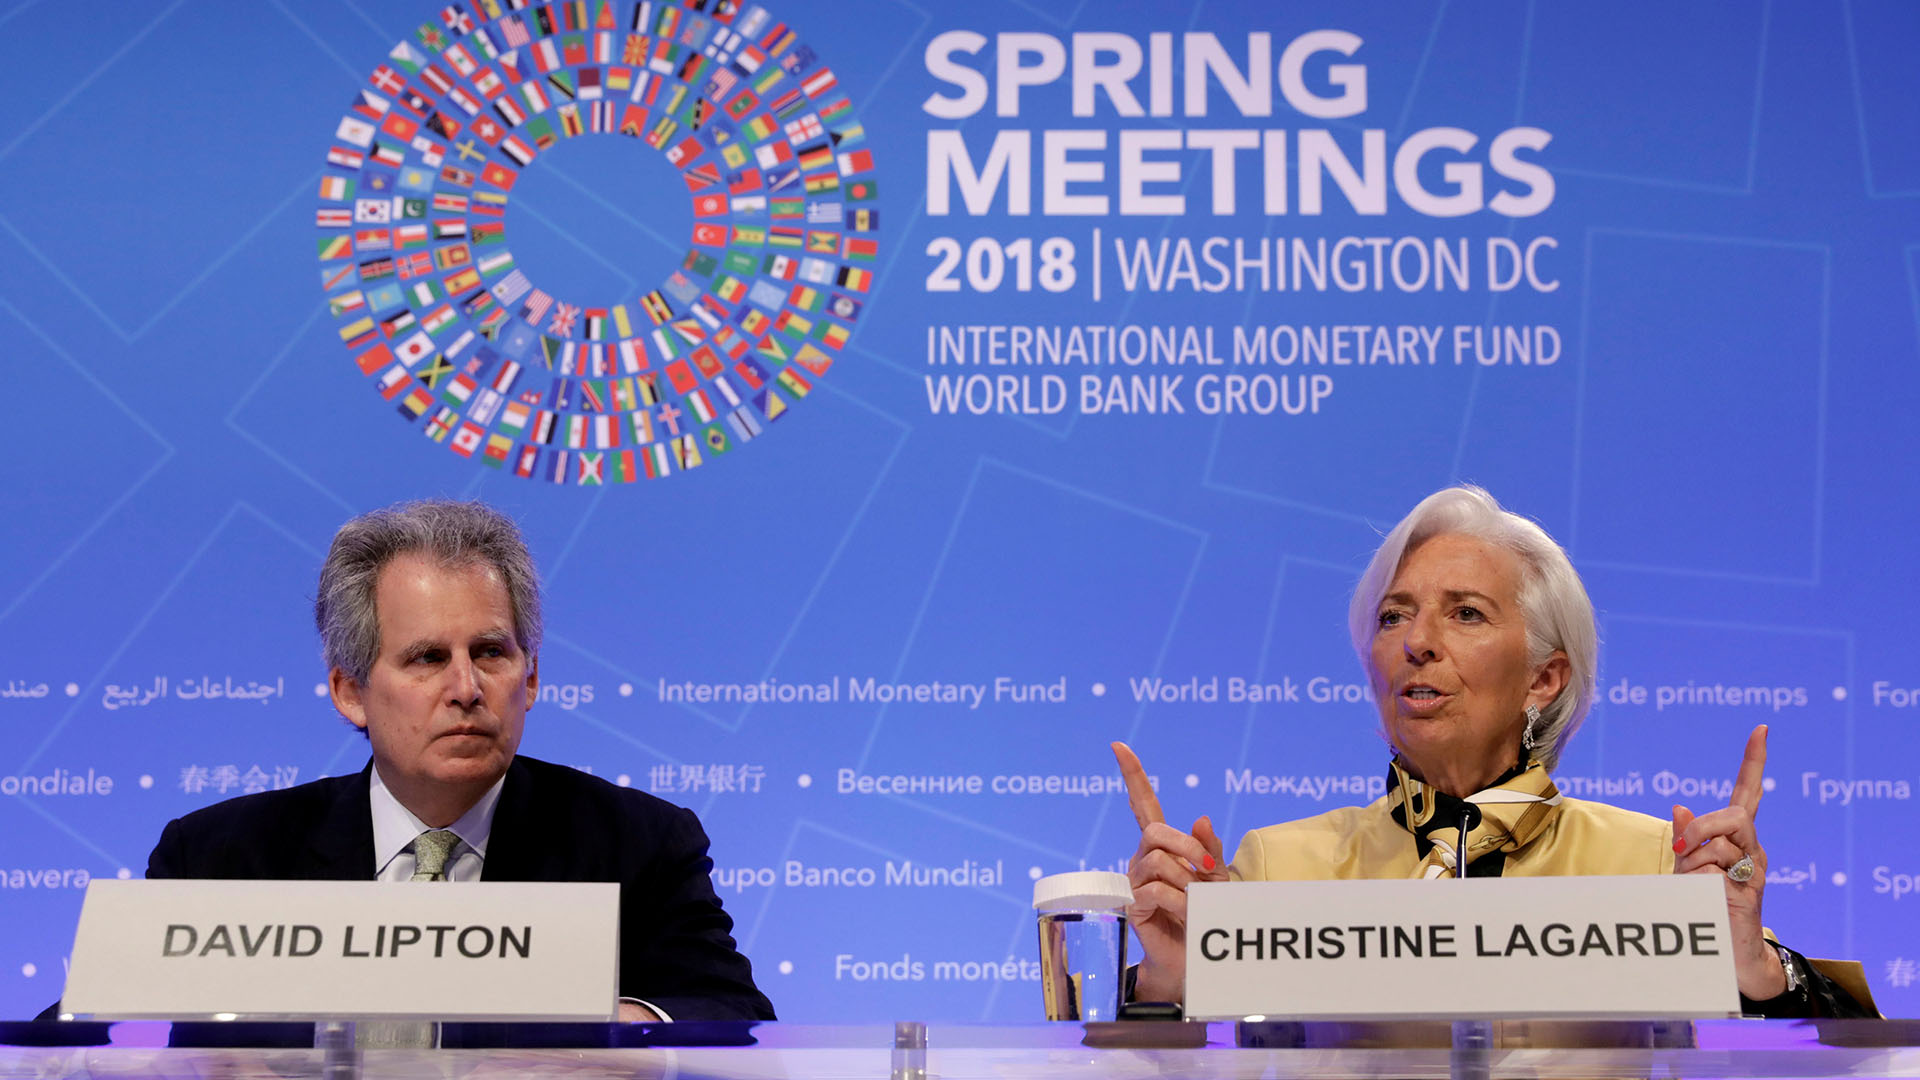 Christine Lagarde y David Lipton